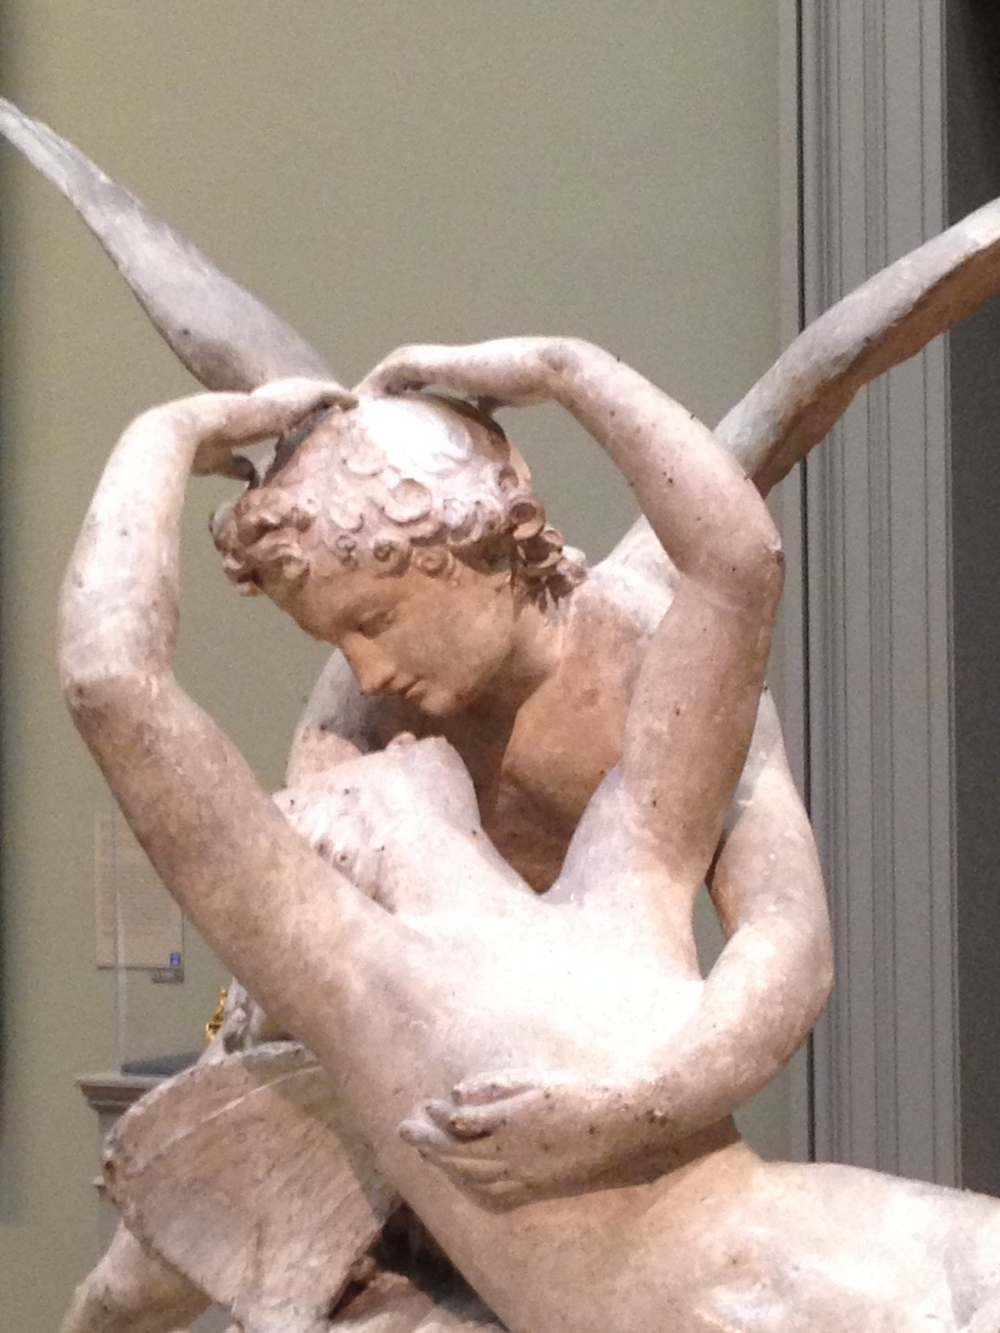 Another sculpture of Cupid and Psyche, by Antonio Canova.